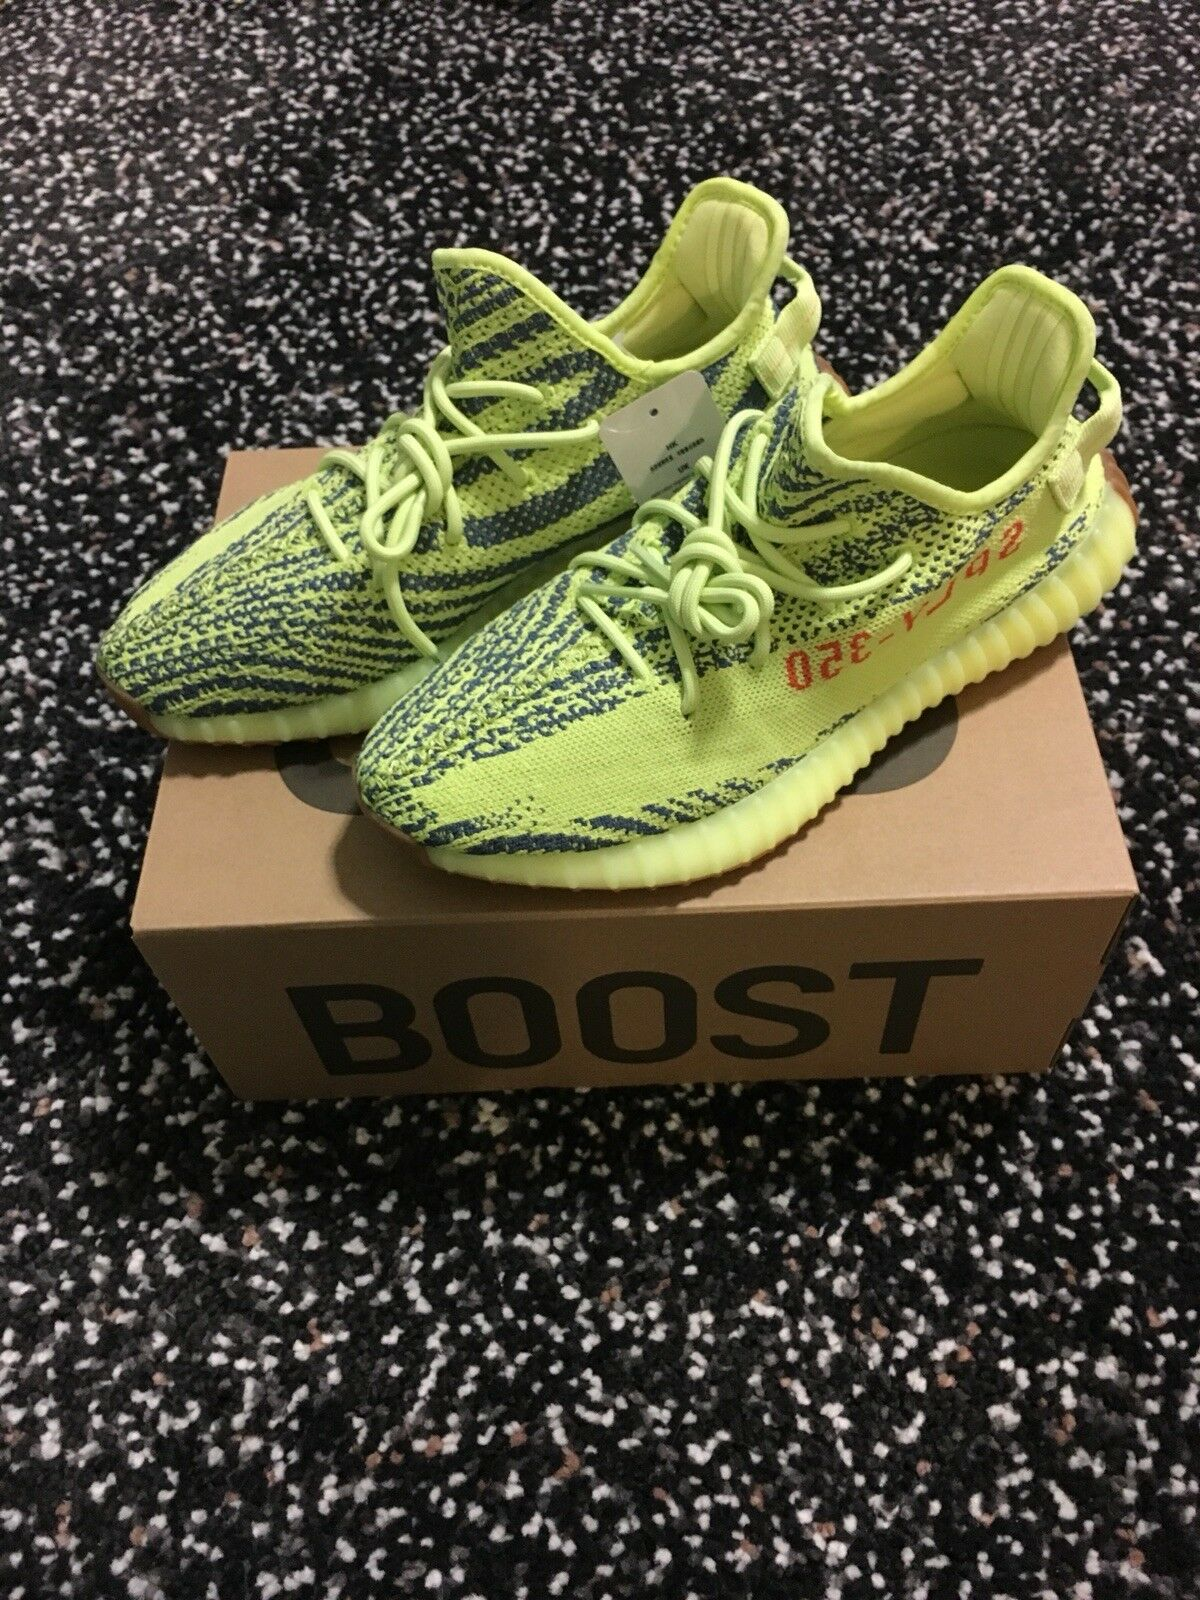 Adidas Yeezy Boost 350 V2 Semi Frozen Yellow MENS SZ 10.5 DS 100% Authentic